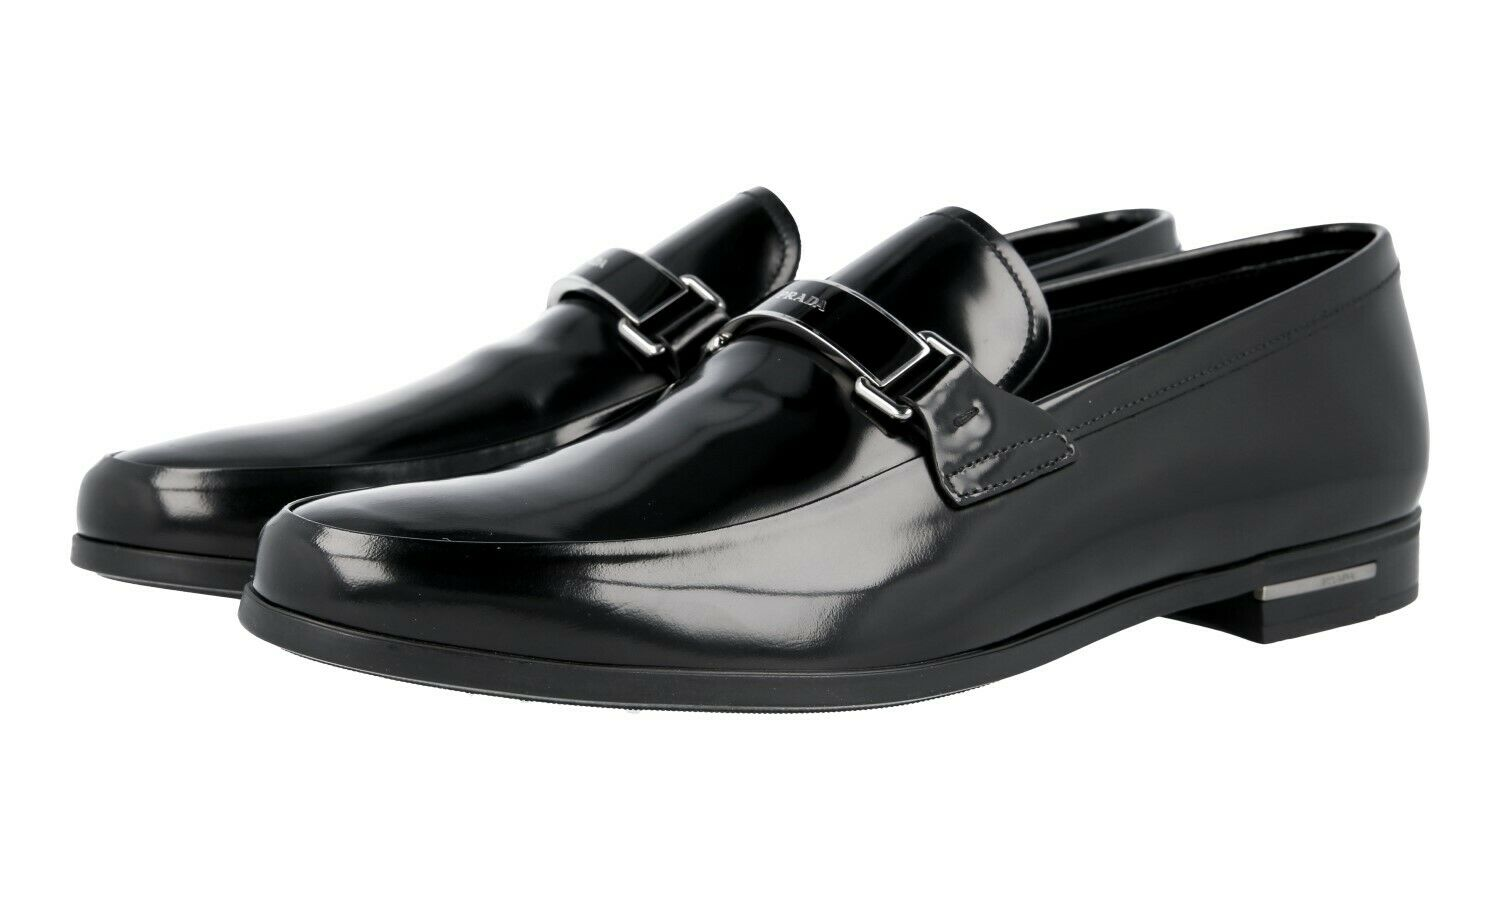 AUTH LUXURY PRADA BUSINESS scarpe LOAFER 2DE060 nero NEW US 10.5 EU 43,5 44